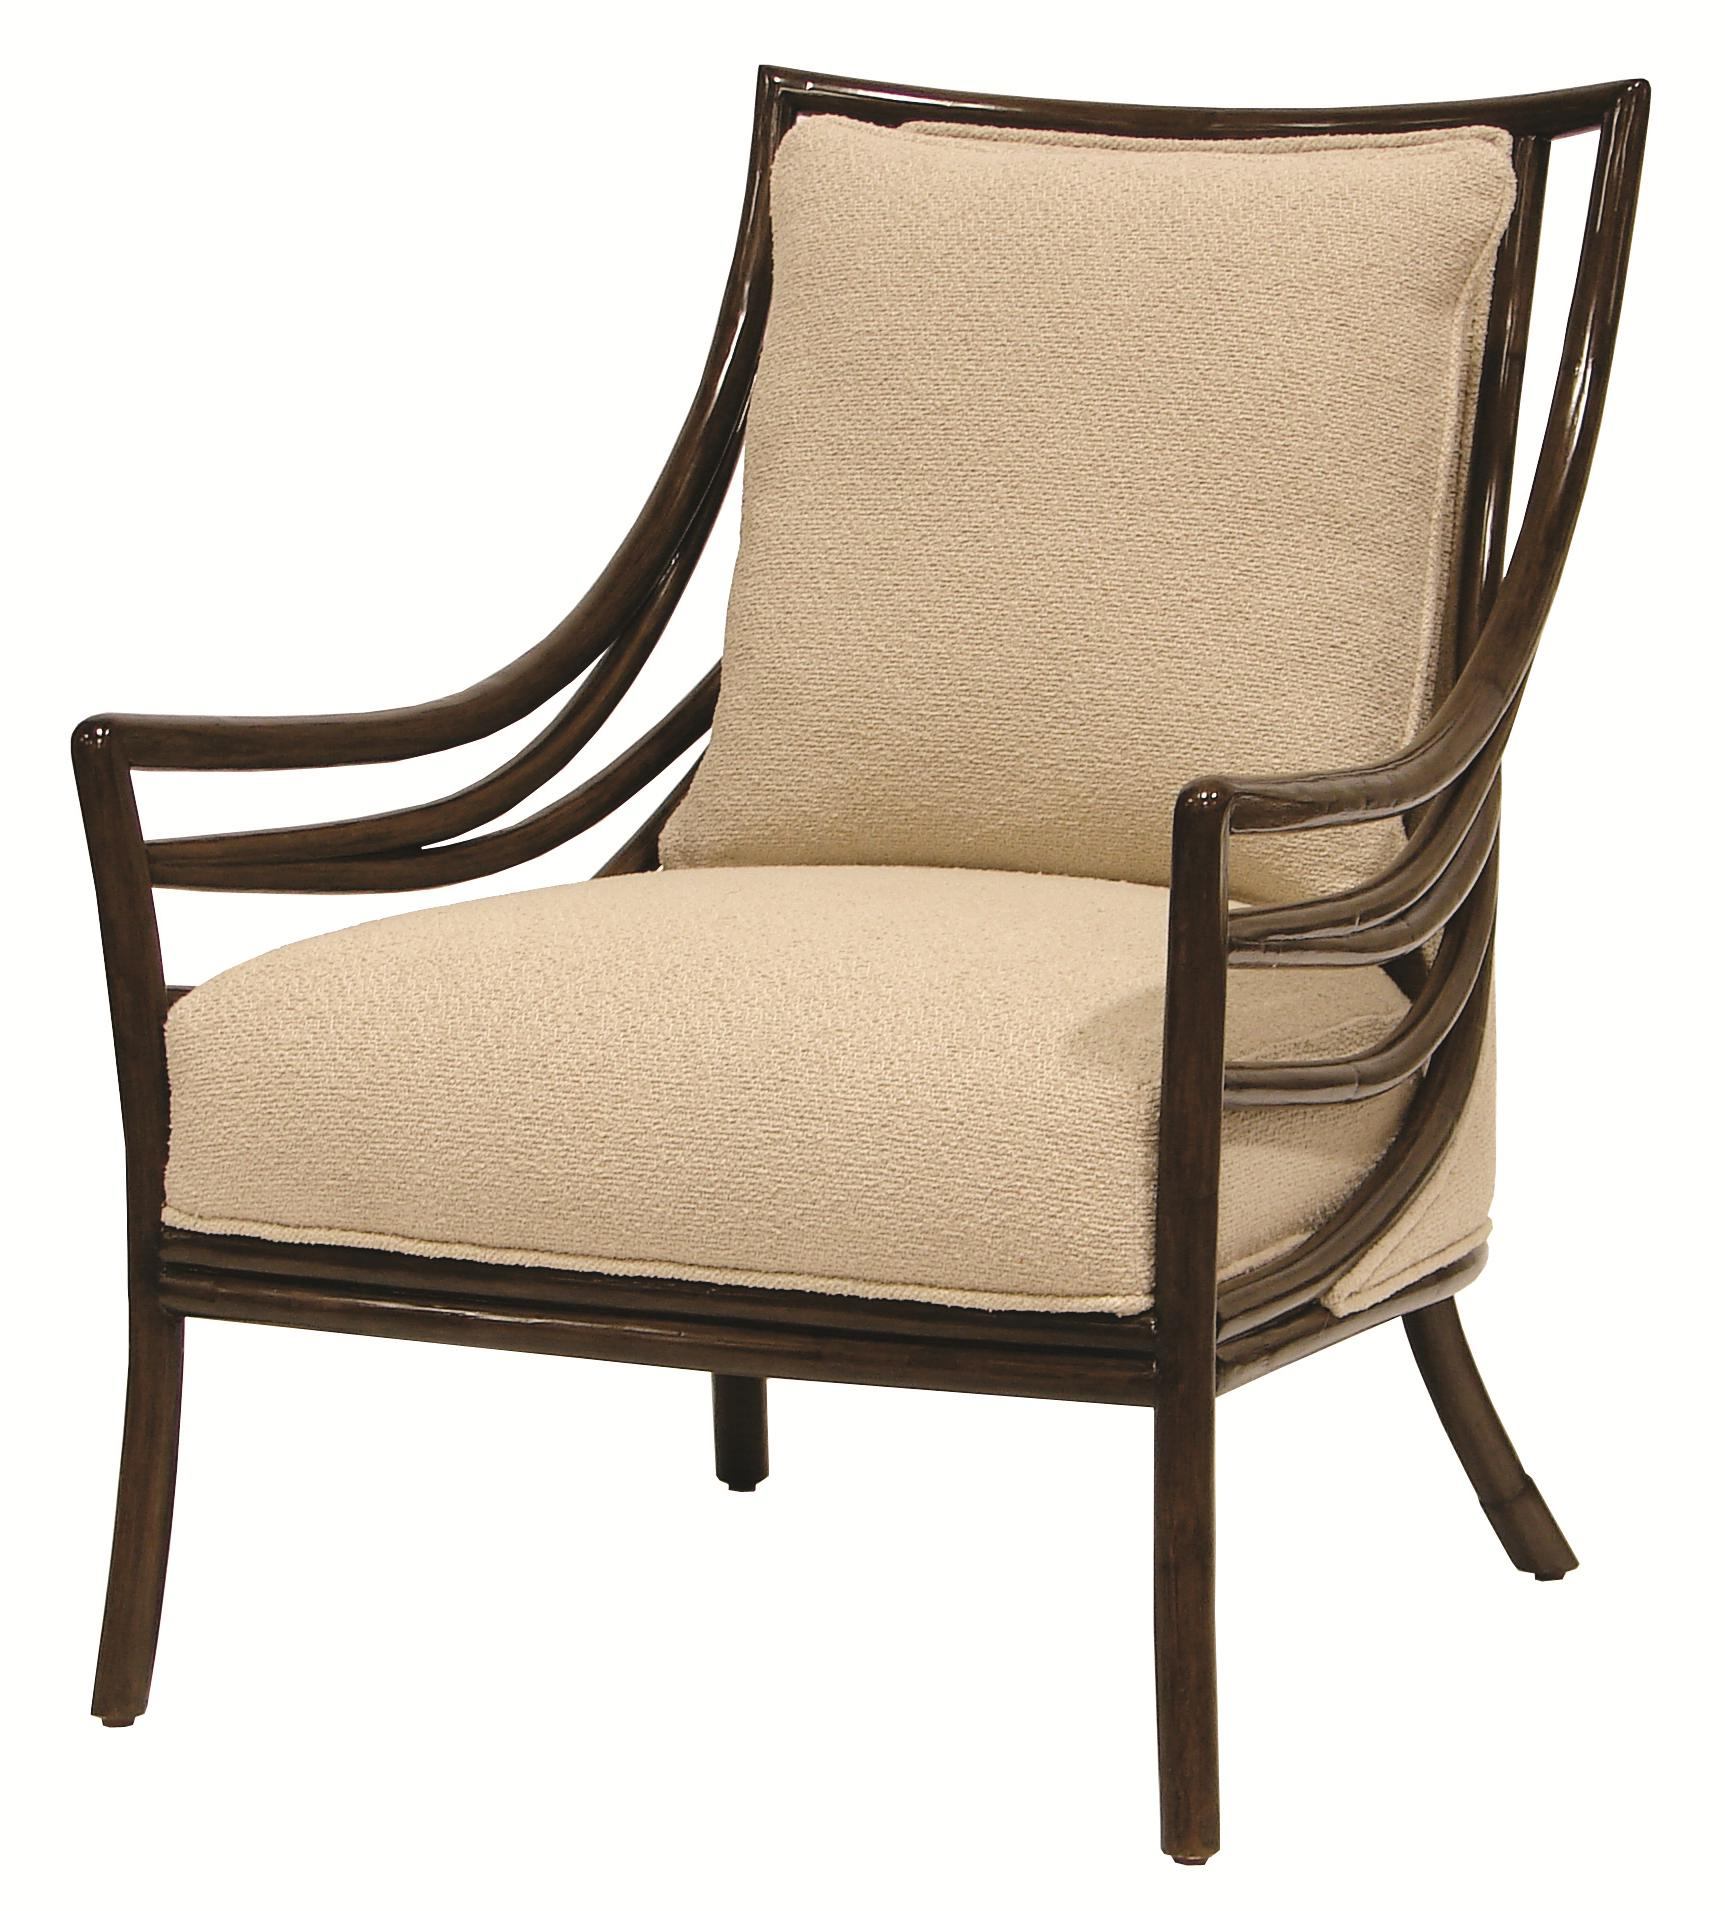 Accent Chairs by Palecek Crescent Lounge Chair by Palecek at Alison Craig Home Furnishings